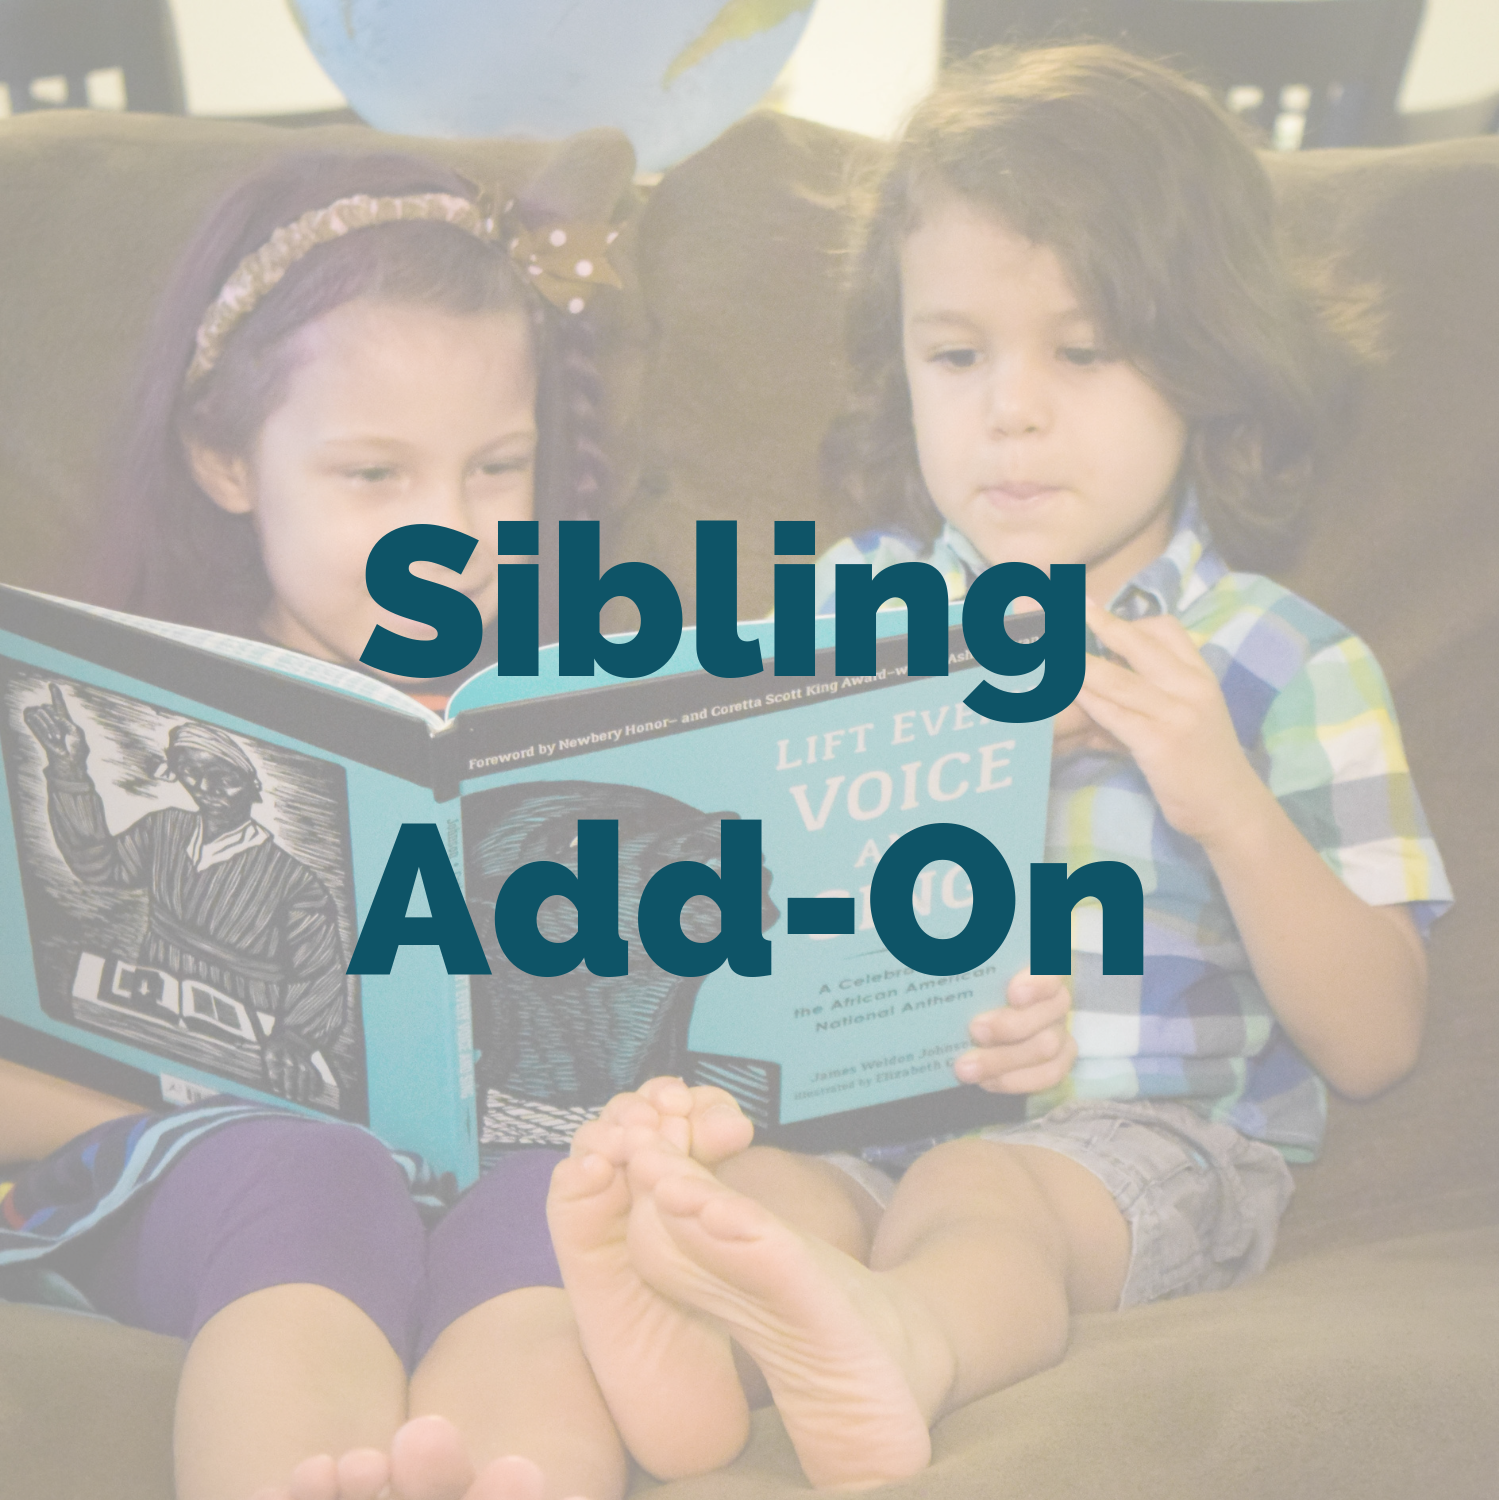 Sibling Add-On